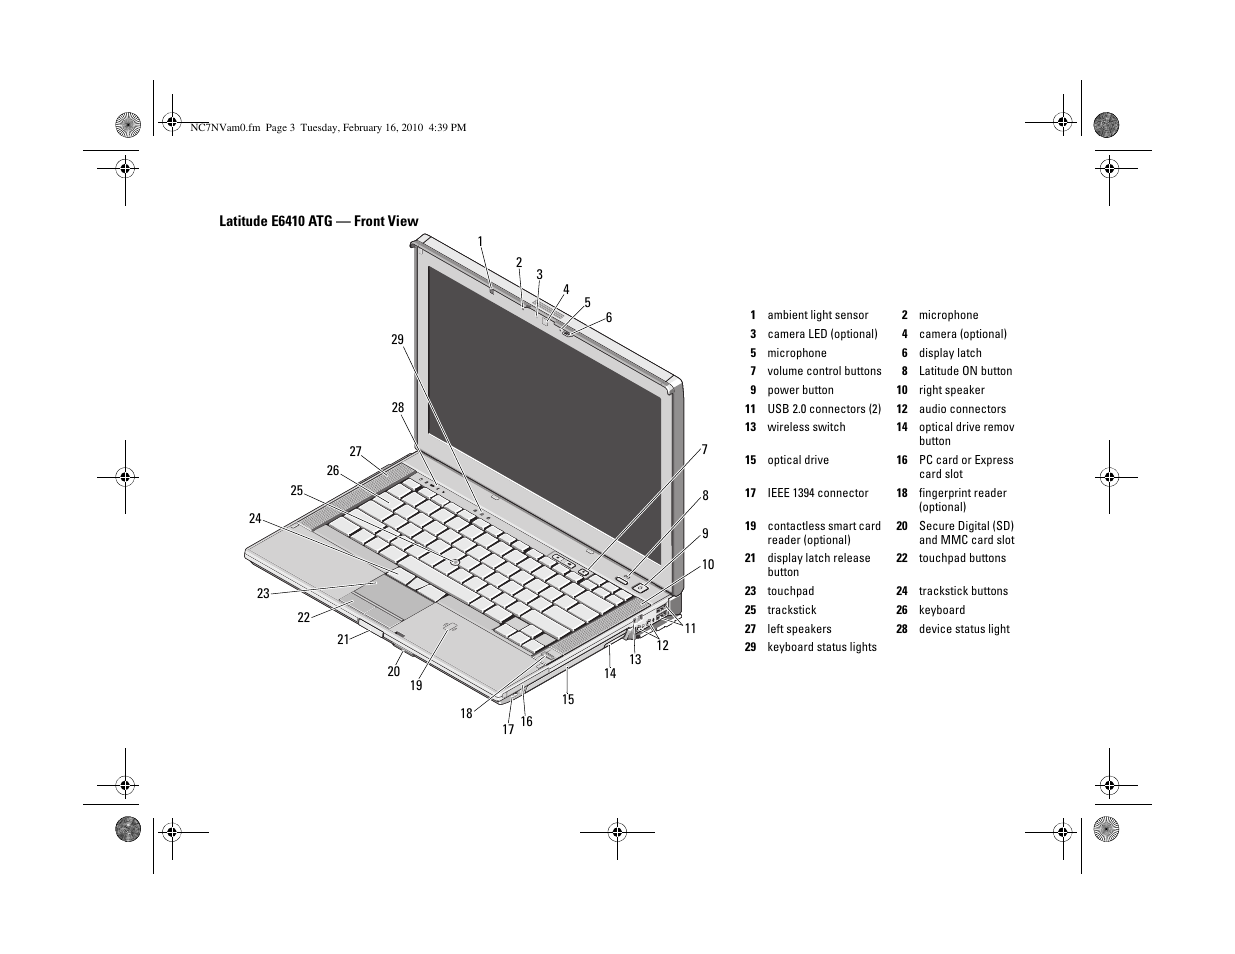 Dell Latitude E6410 User Manual | Page 3 / 8 | Original mode | Also